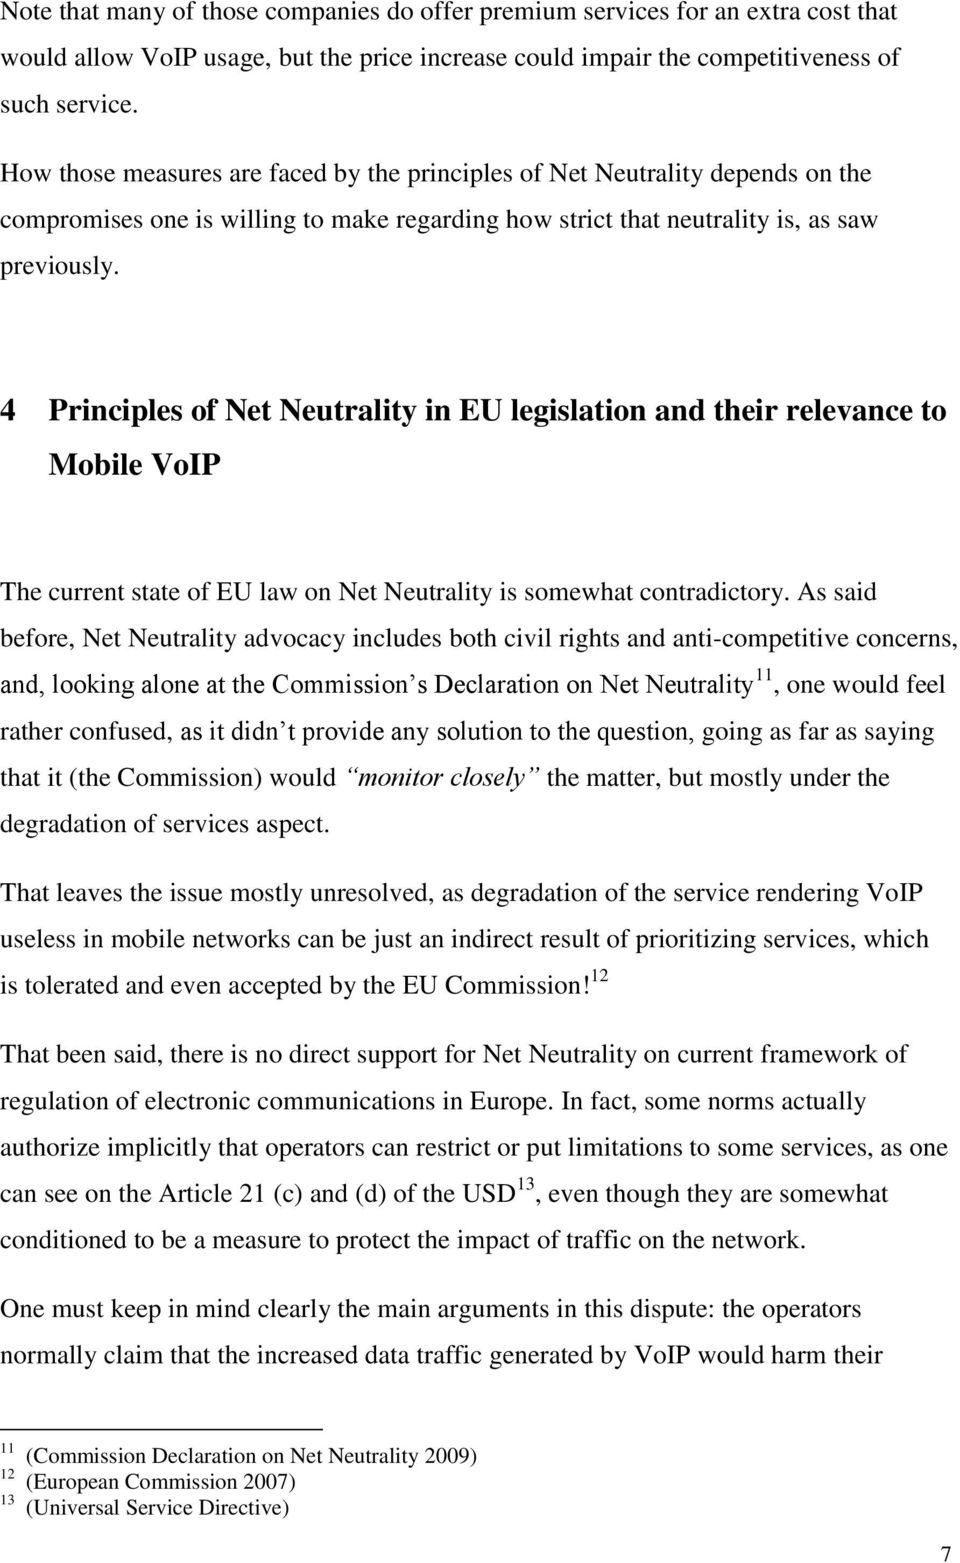 4 Principles of Net Neutrality in EU legislation and their relevance to Mobile VoIP The current state of EU law on Net Neutrality is somewhat contradictory.